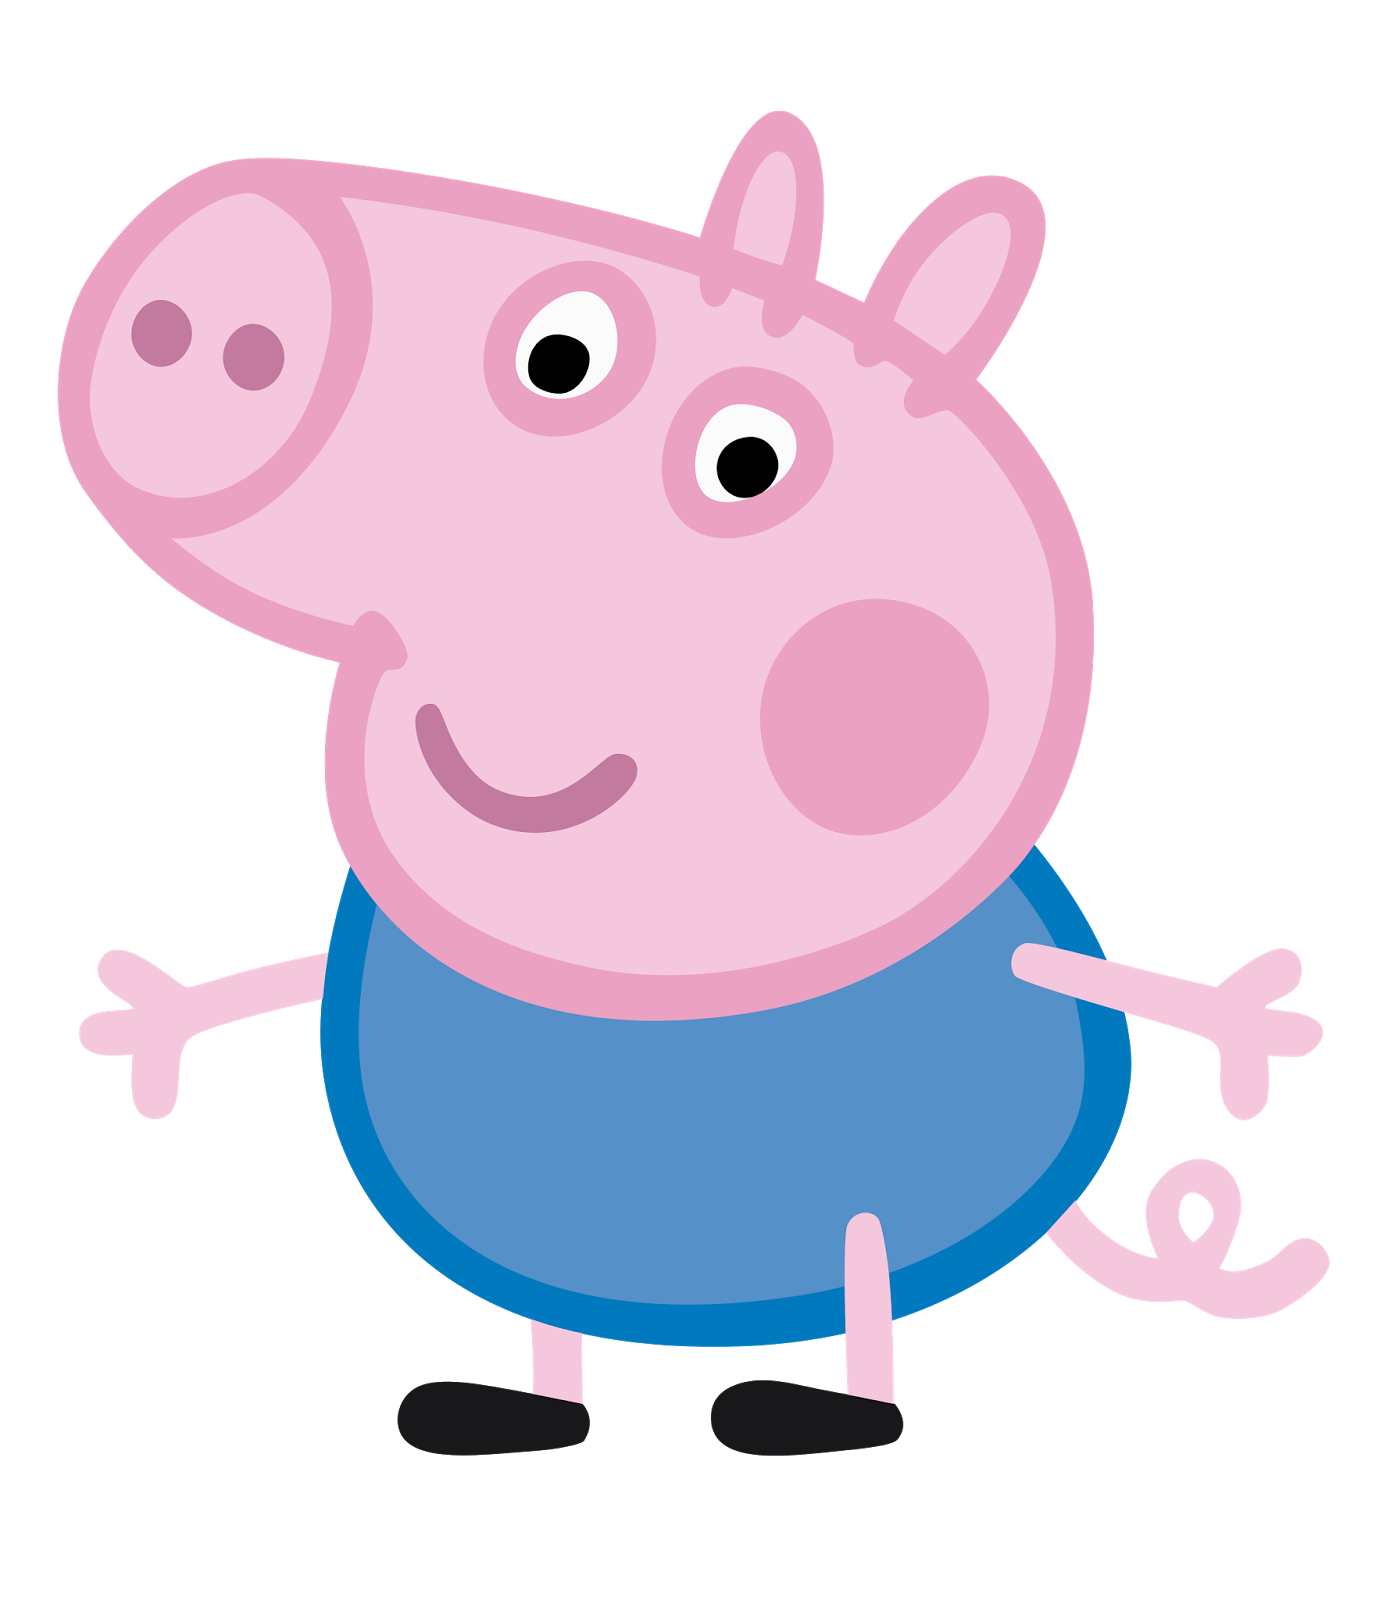 Cartoon Characters 02 : Cartoon characters peppa pig png hq